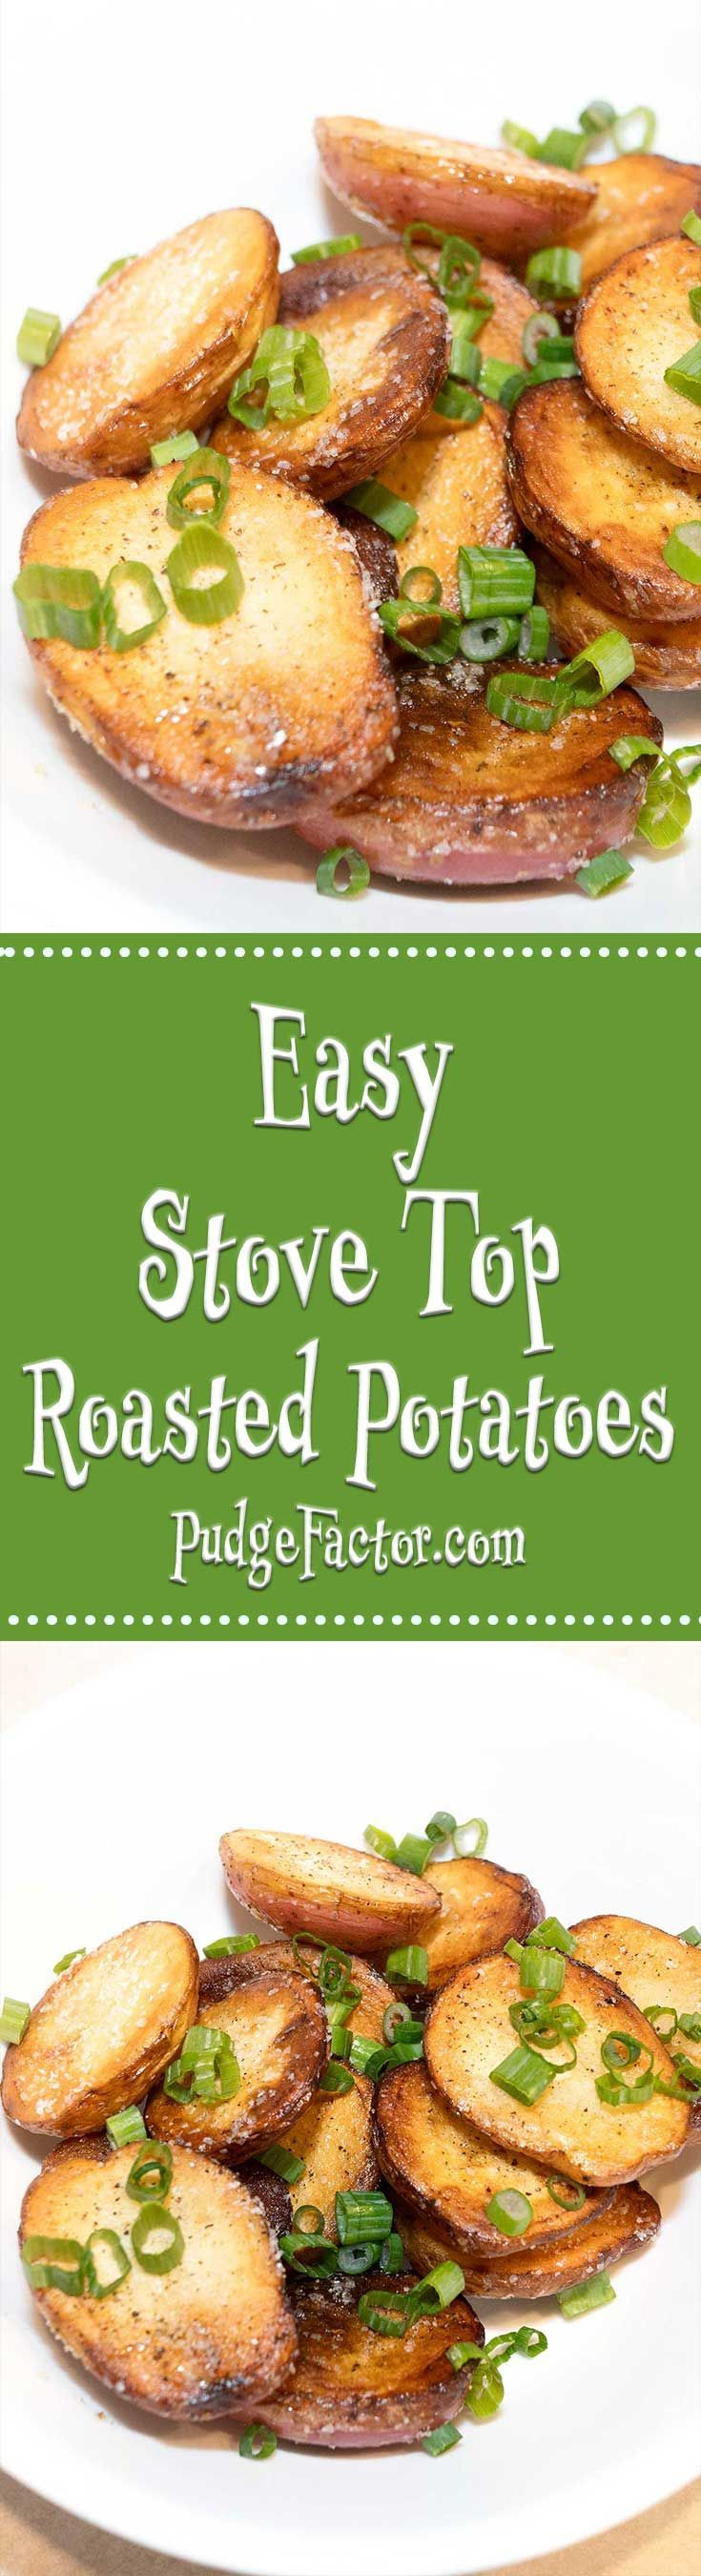 These roasted potatoes are crispy on the outside and creamy on the inside?.Now you can make these easy roasted potatoes on your stove top. via /c2king/